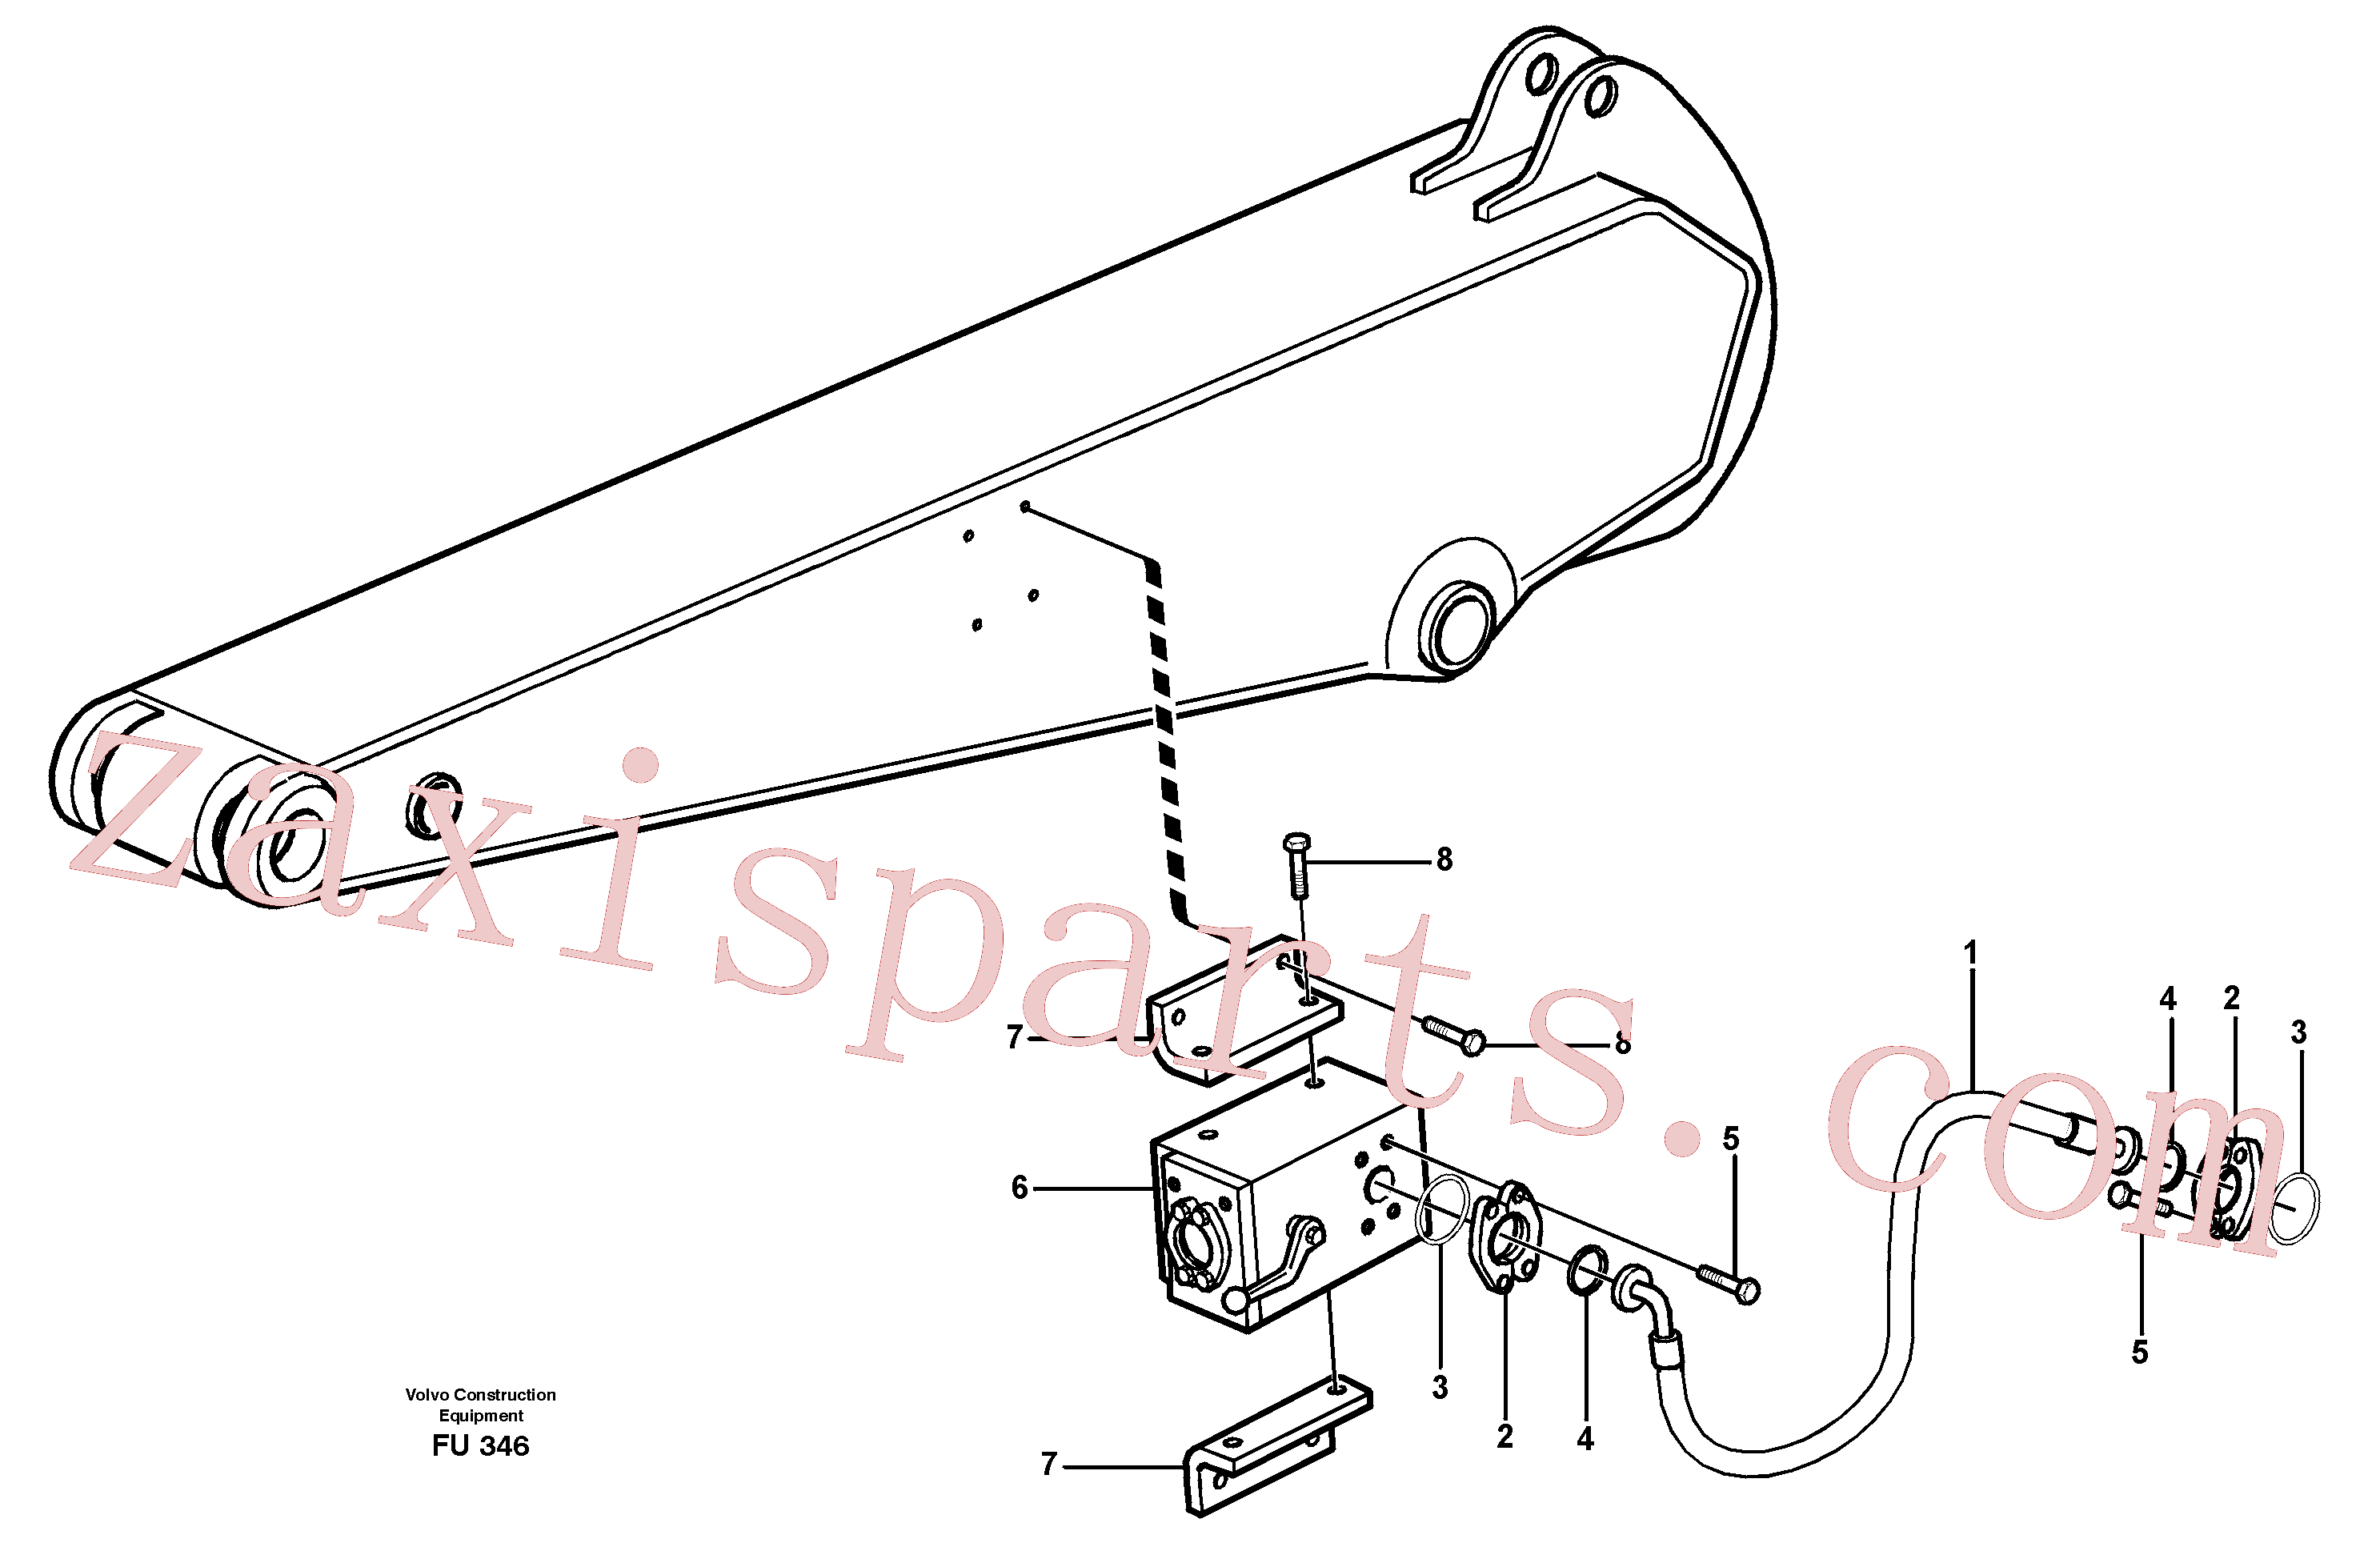 VOE14342361 for Volvo Hammer hydraulics on dipper arm, 2.4 m/ 2.9 m/ 3.5 m/ 4.1m(FU346 assembly)